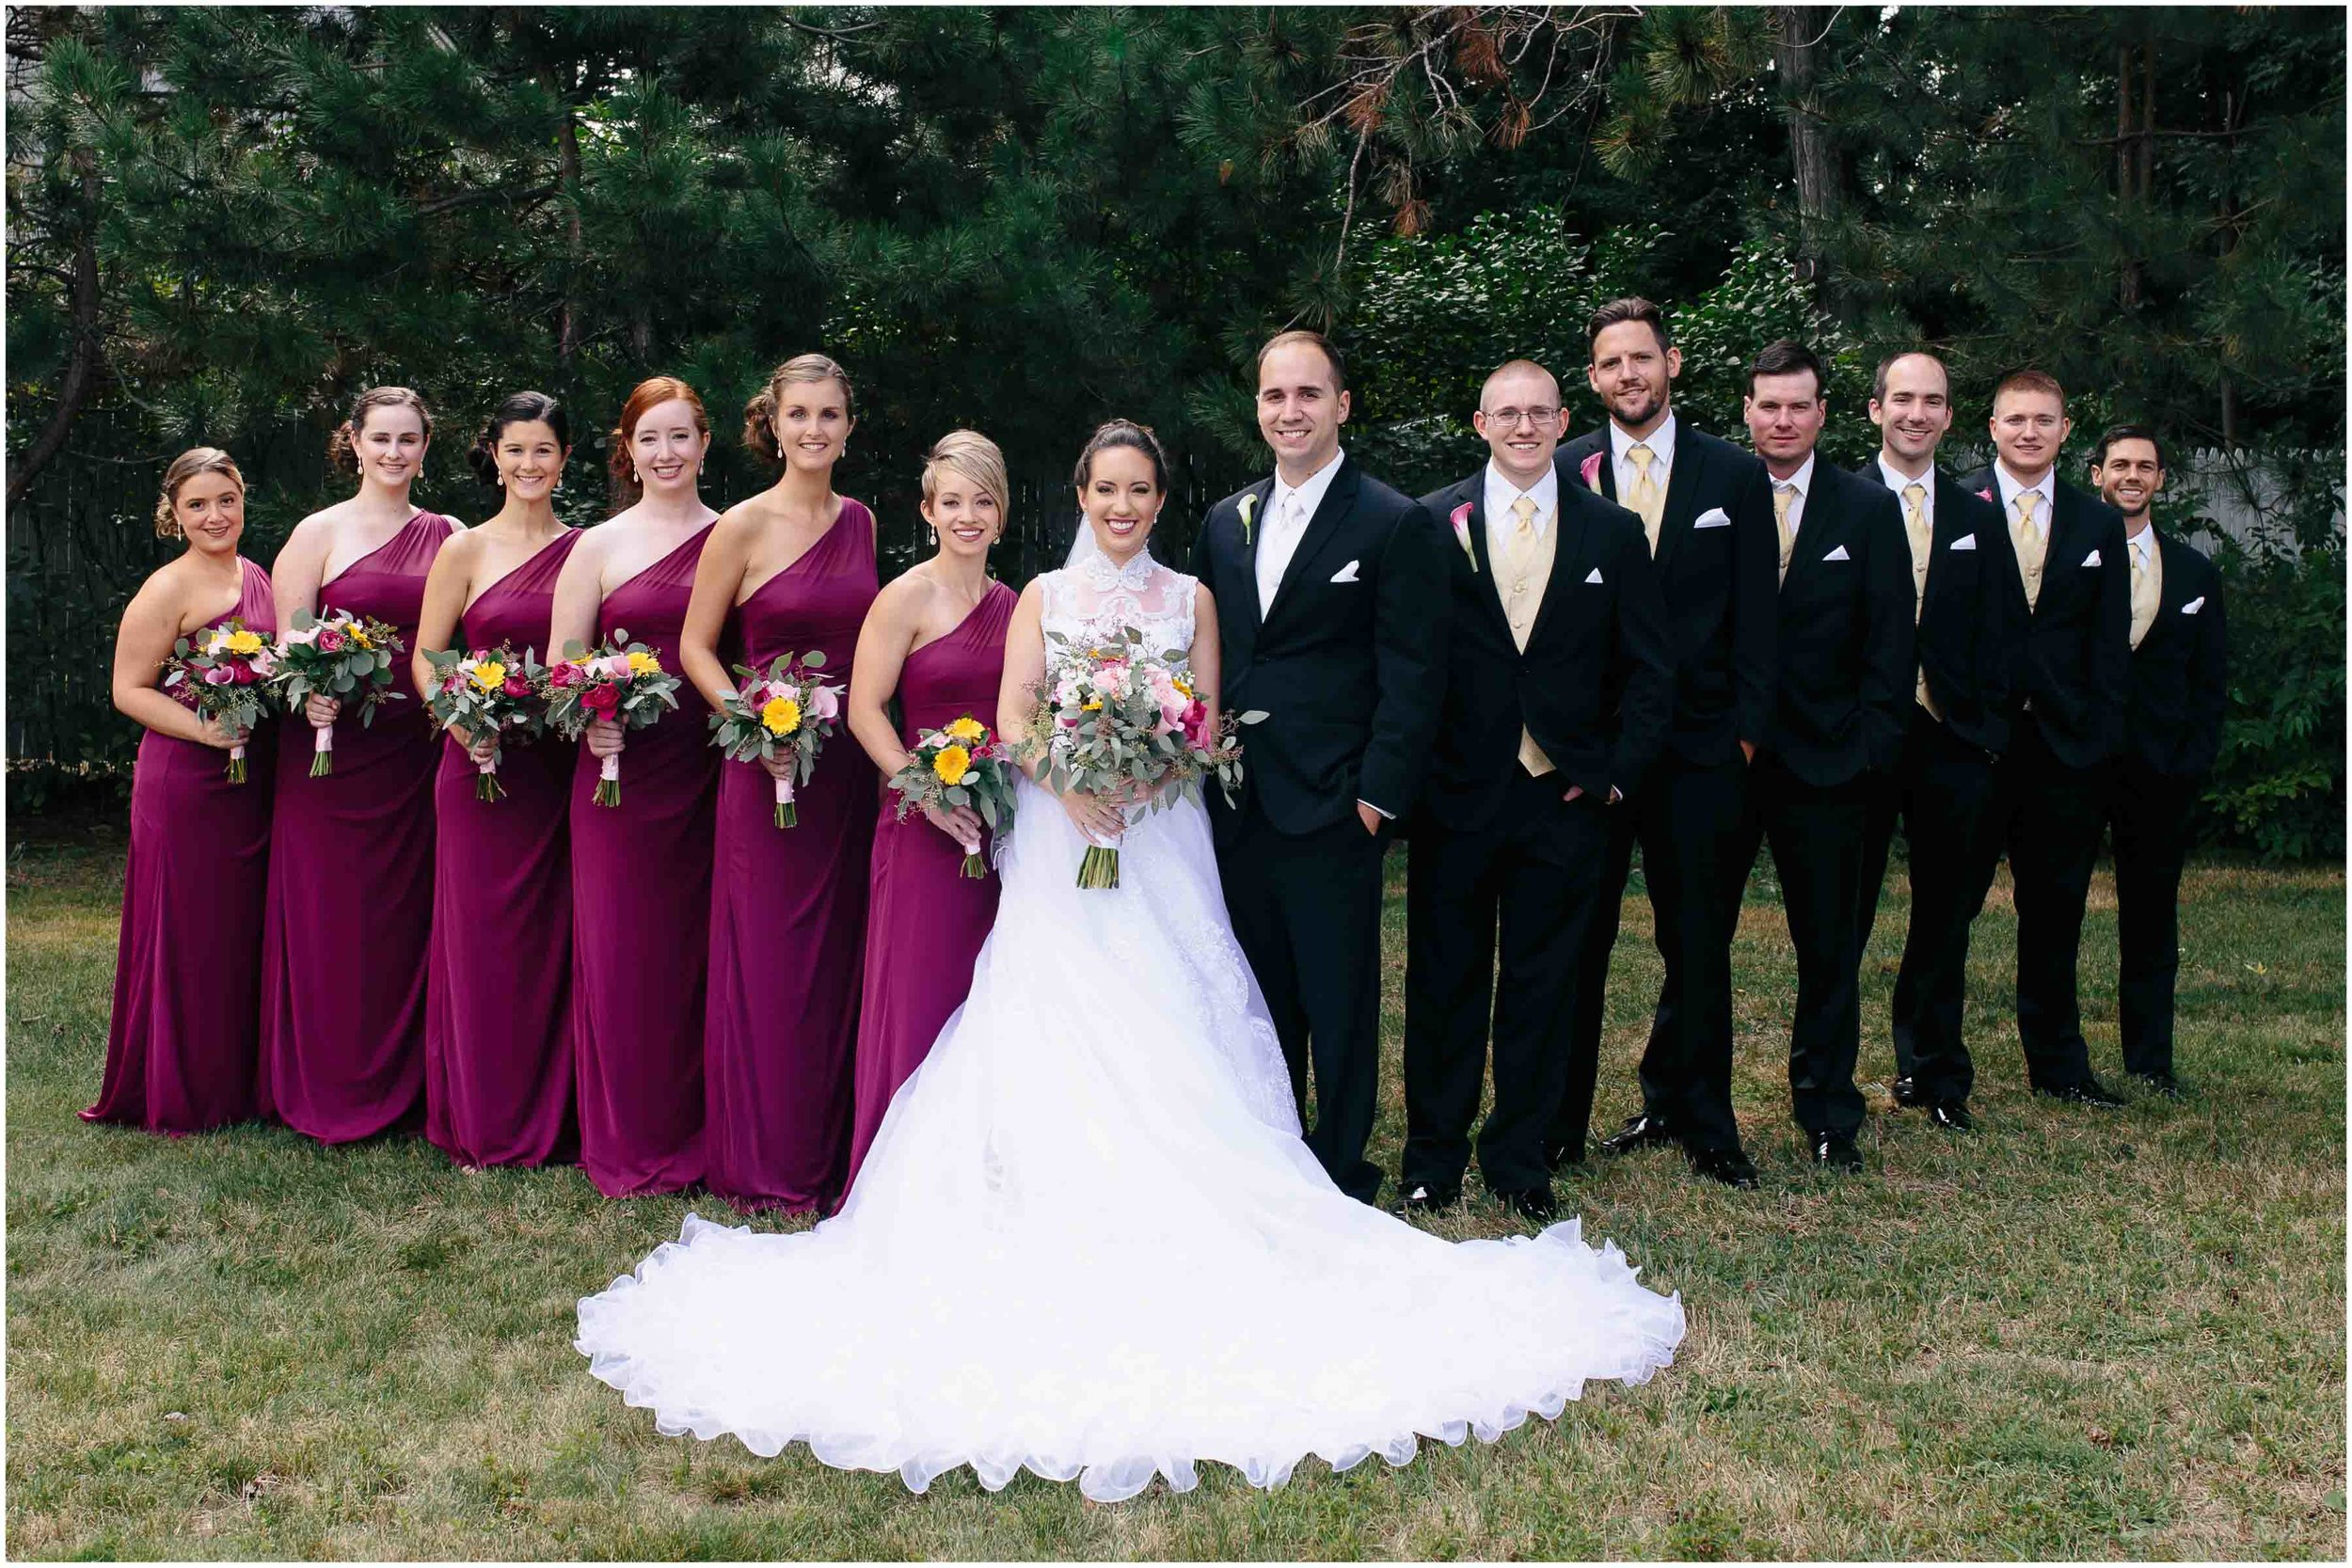 Chic New Hampshire Wedding at Manchester Country Club Bedford - wedding party